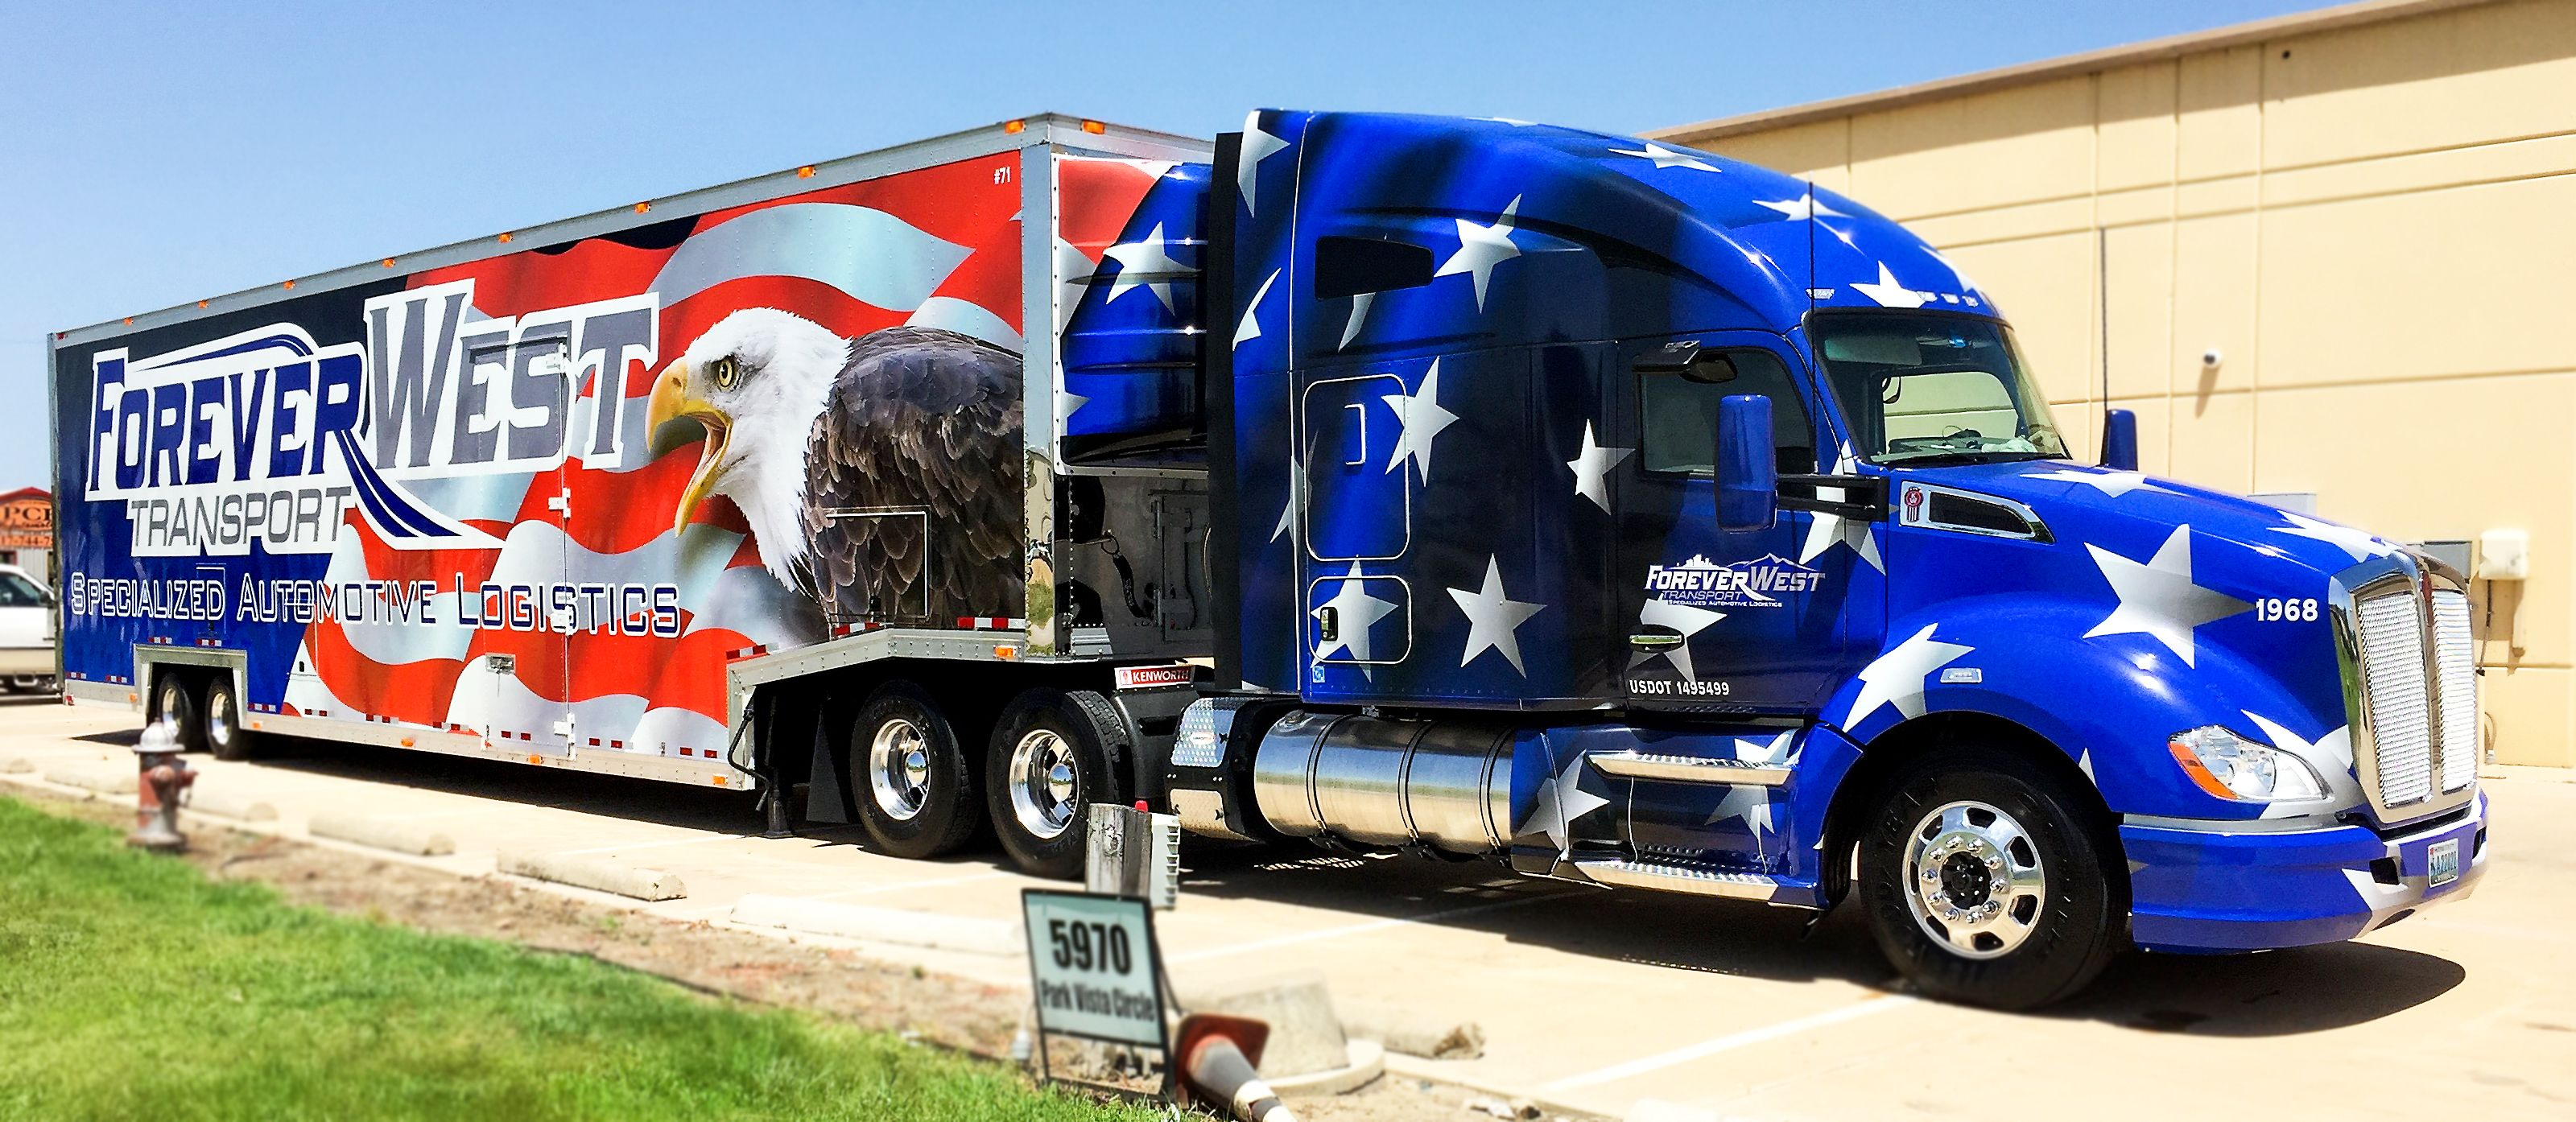 Freightliner Wrap Dfw Truck And Trailer Commercial Vehicle Car Wrap Vehicles